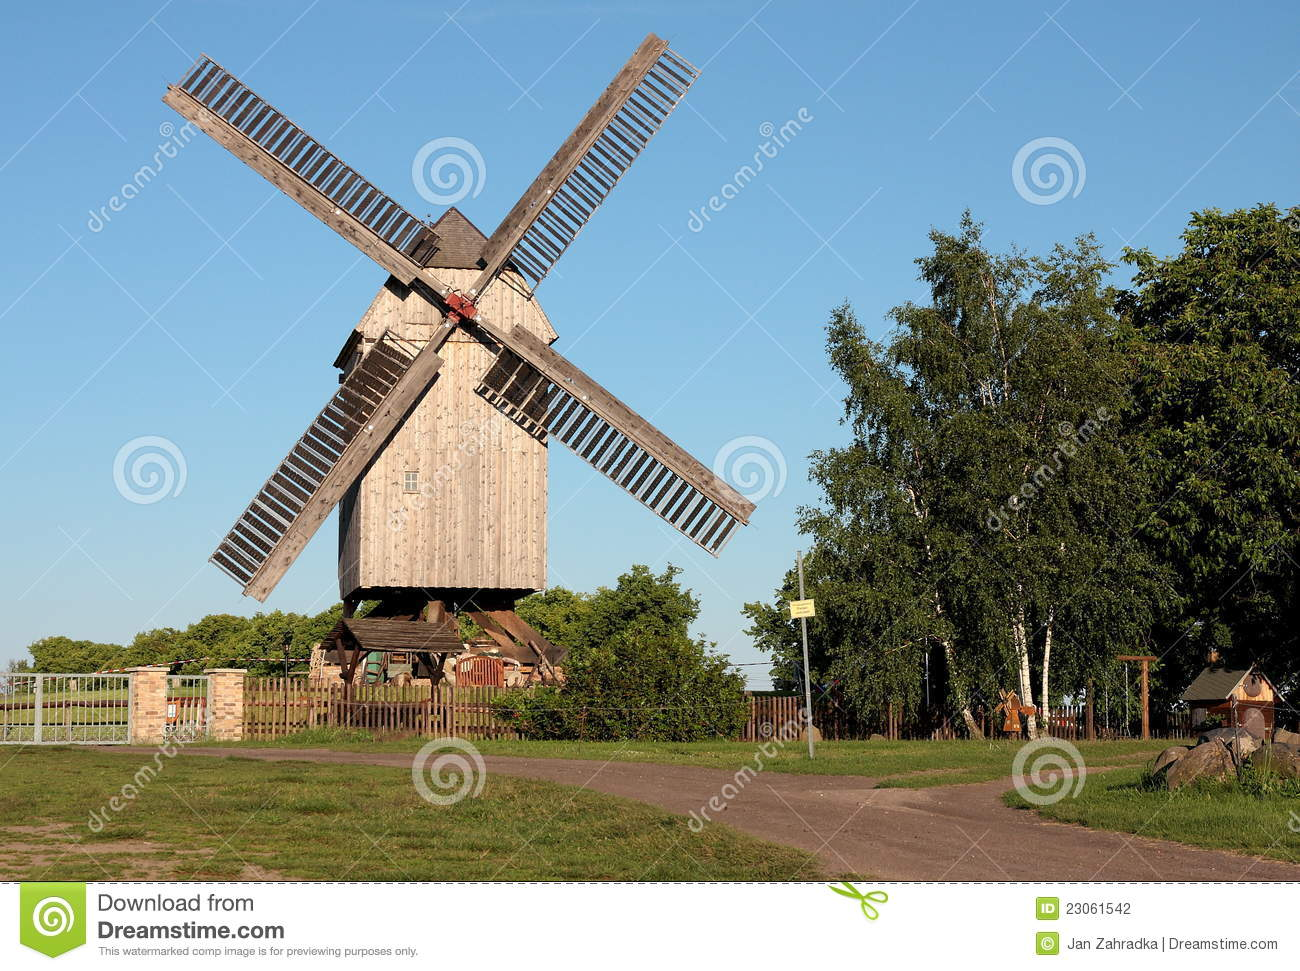 wind mill Windmill design is the minneapolis web design and development agency with the expertise that delivers results we create websites, brands and marketing collateral backed by data and expertise, in order to meet your goals.